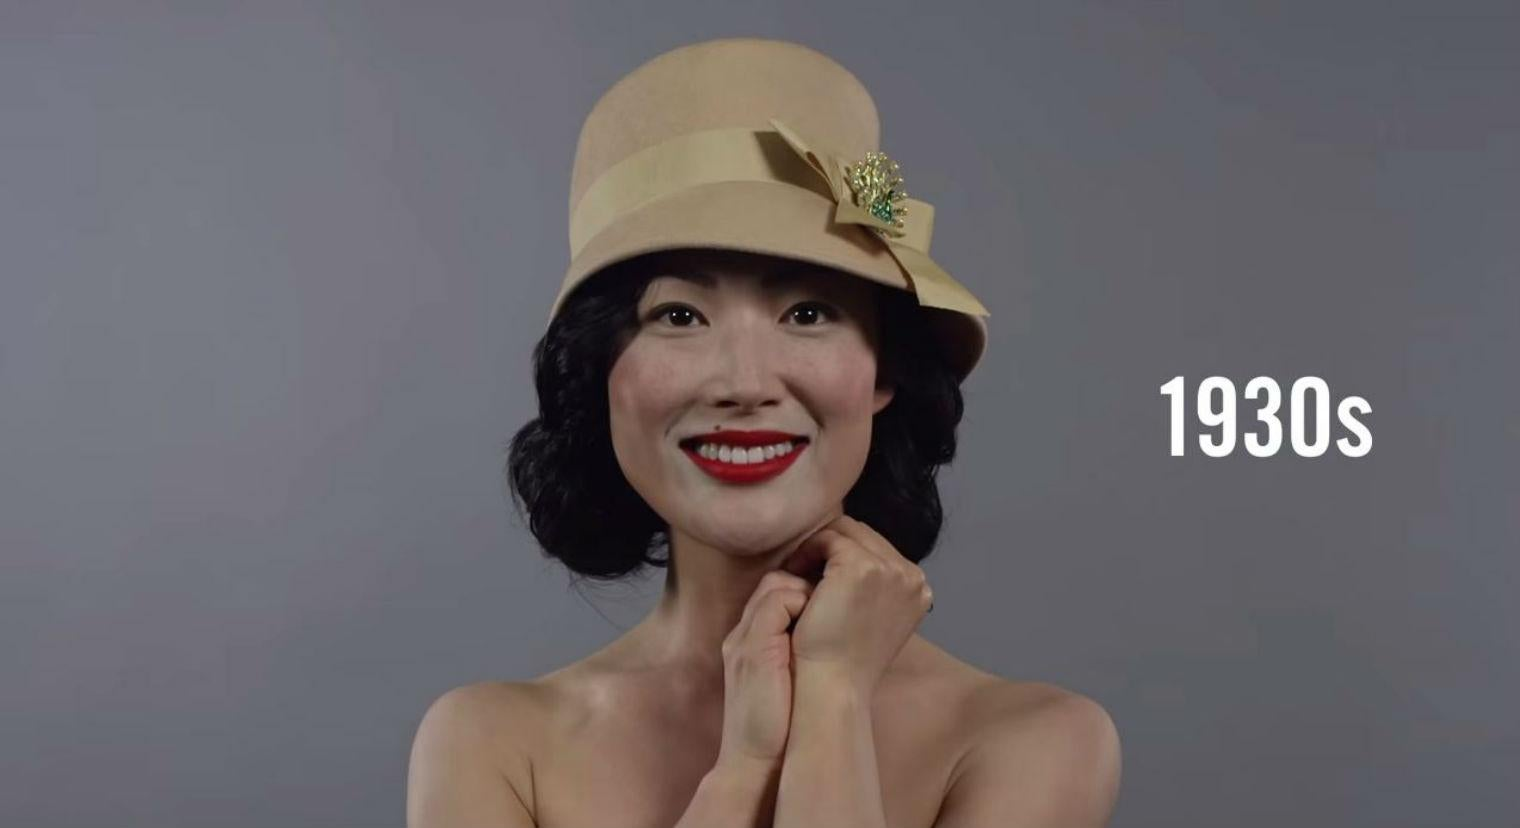 Watch 100 years of North and South Korean beauty trends in one minute | indy100